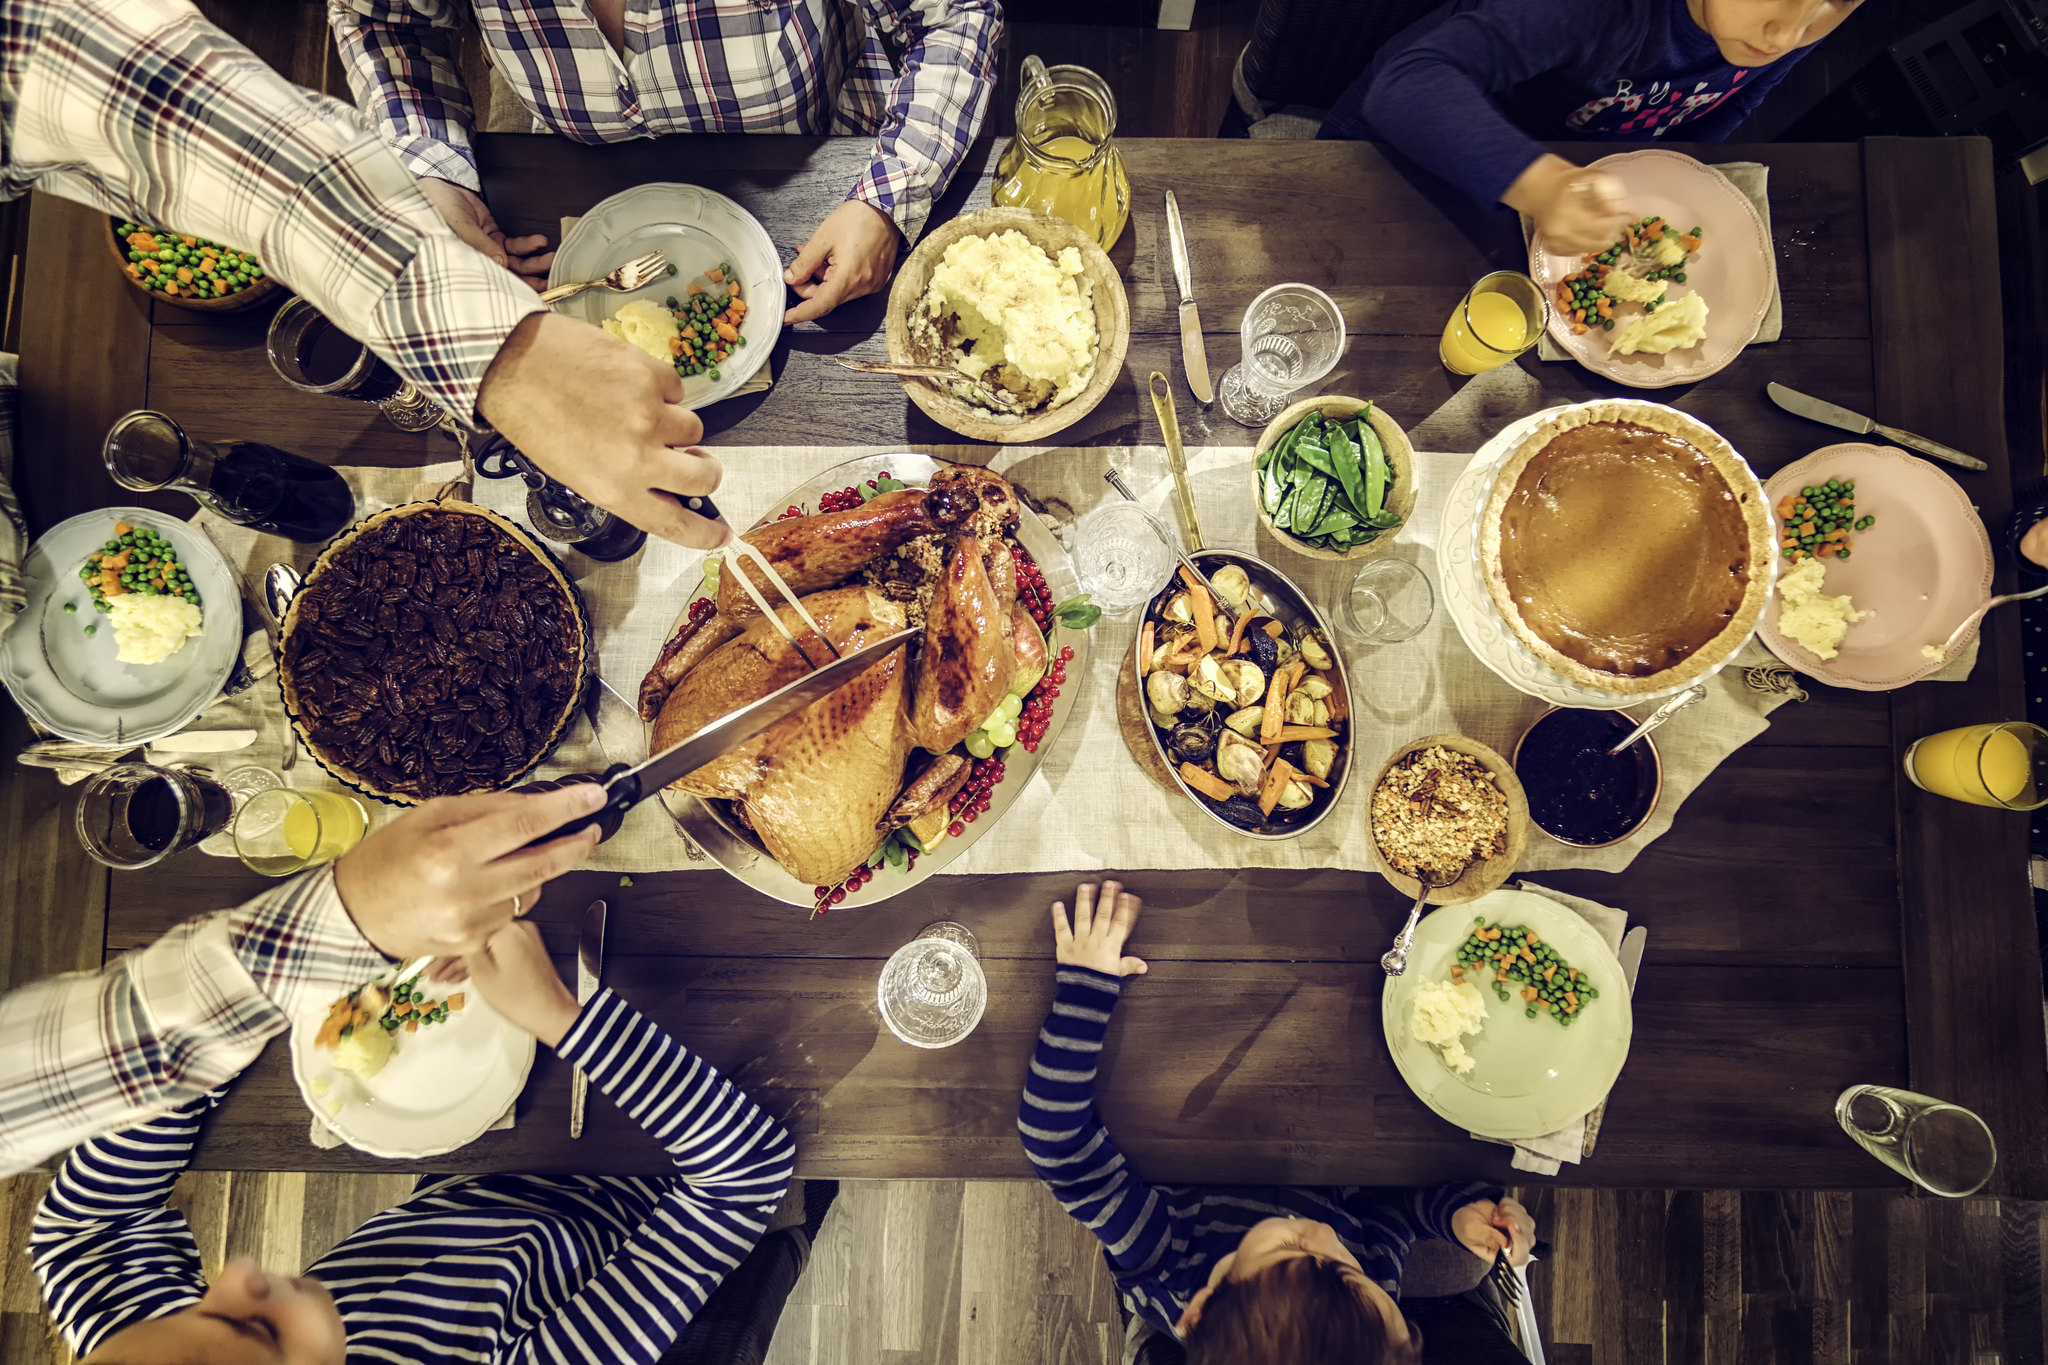 Add some fun to your family gathering with these easy Thanksgiving crafts